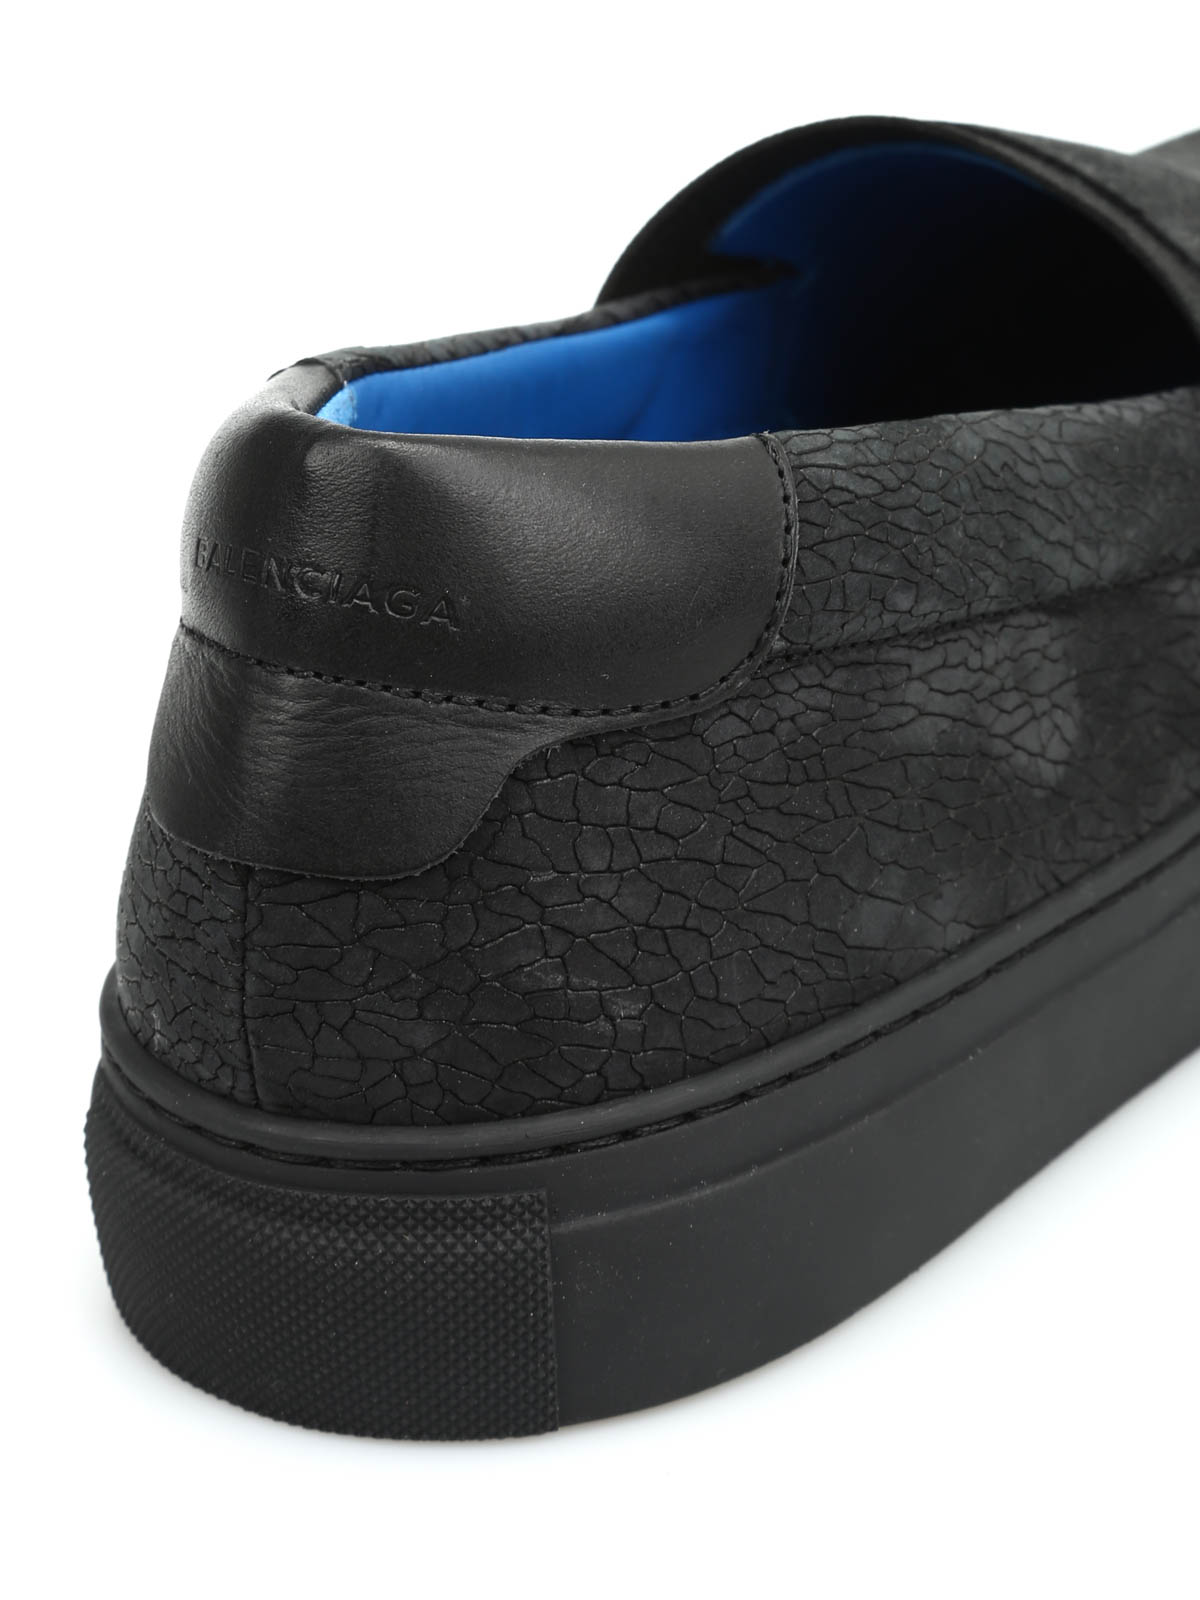 Balenciaga - Leather slip-on - Loafers   Slippers - 412353 WAX91 1000 4c7c426d38c0